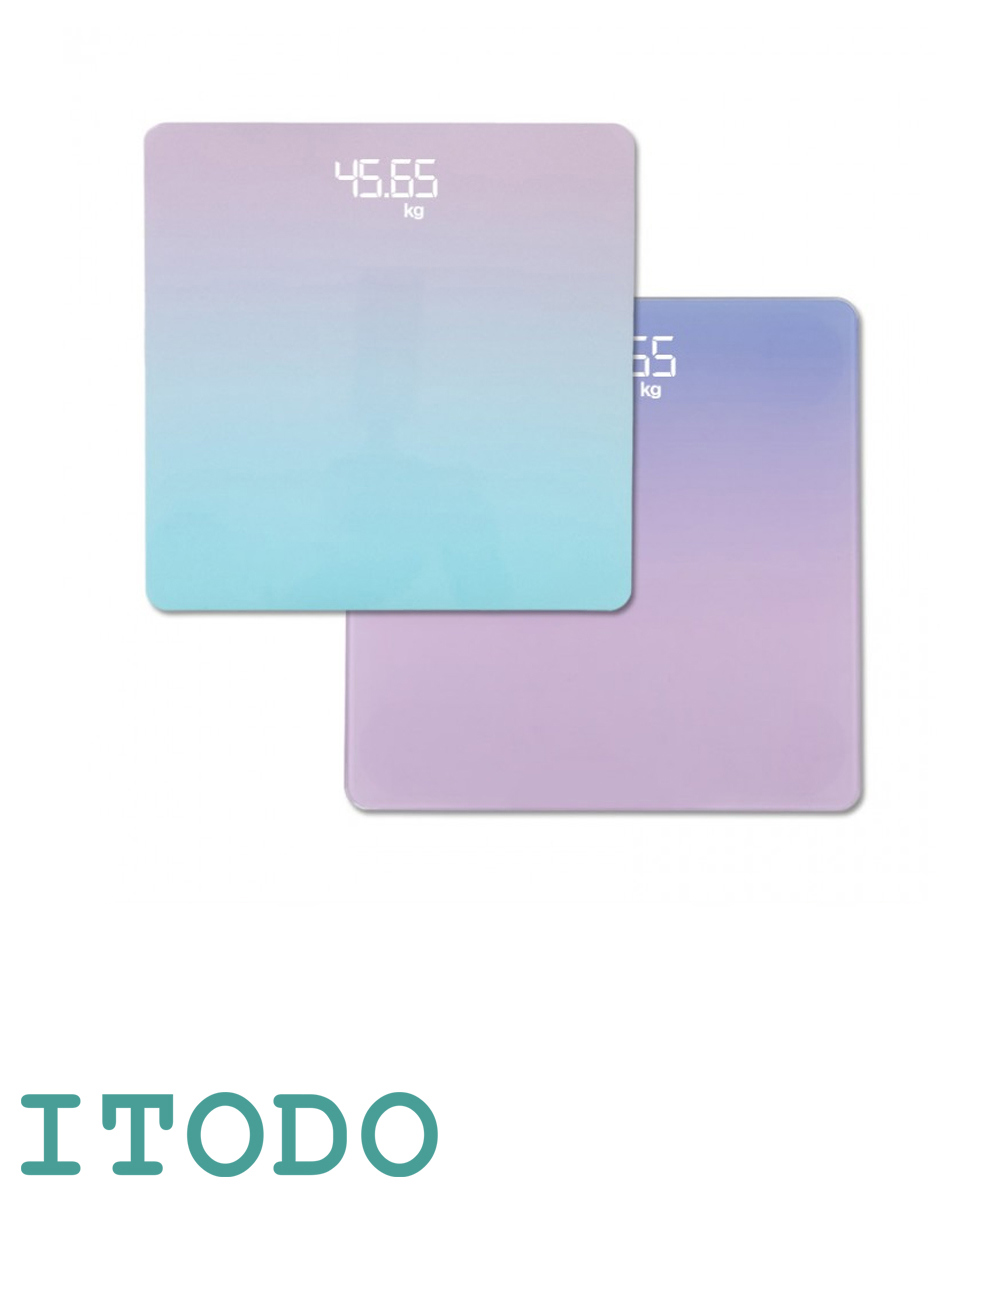 Itodo Room Temperature Thermometer and Weight Measurement Pastel LED Scale d1